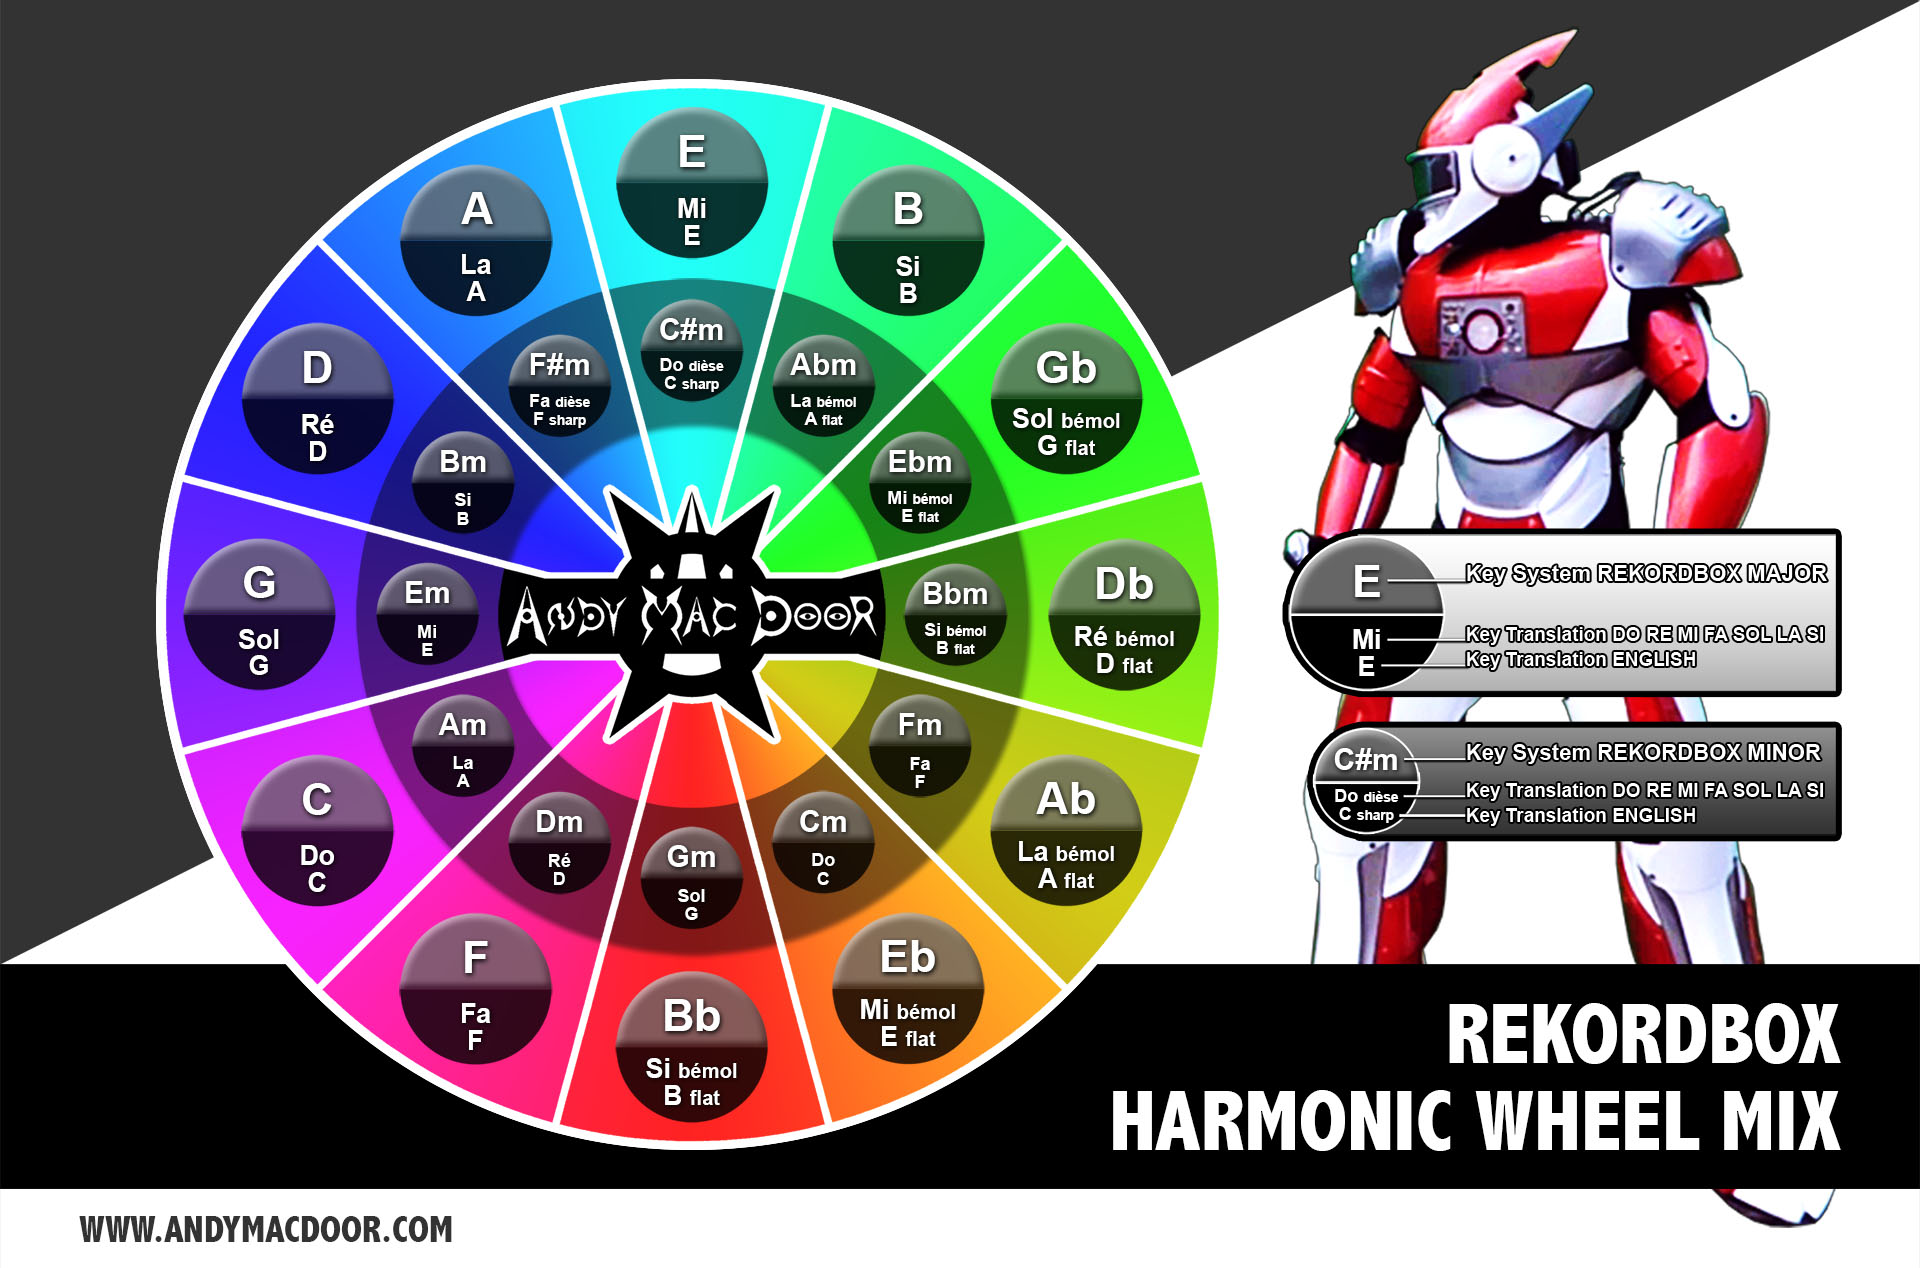 REKORDBOX - Harmonic mix wheel schema - TRANSLATION - Camelot - by Andy Mac Door